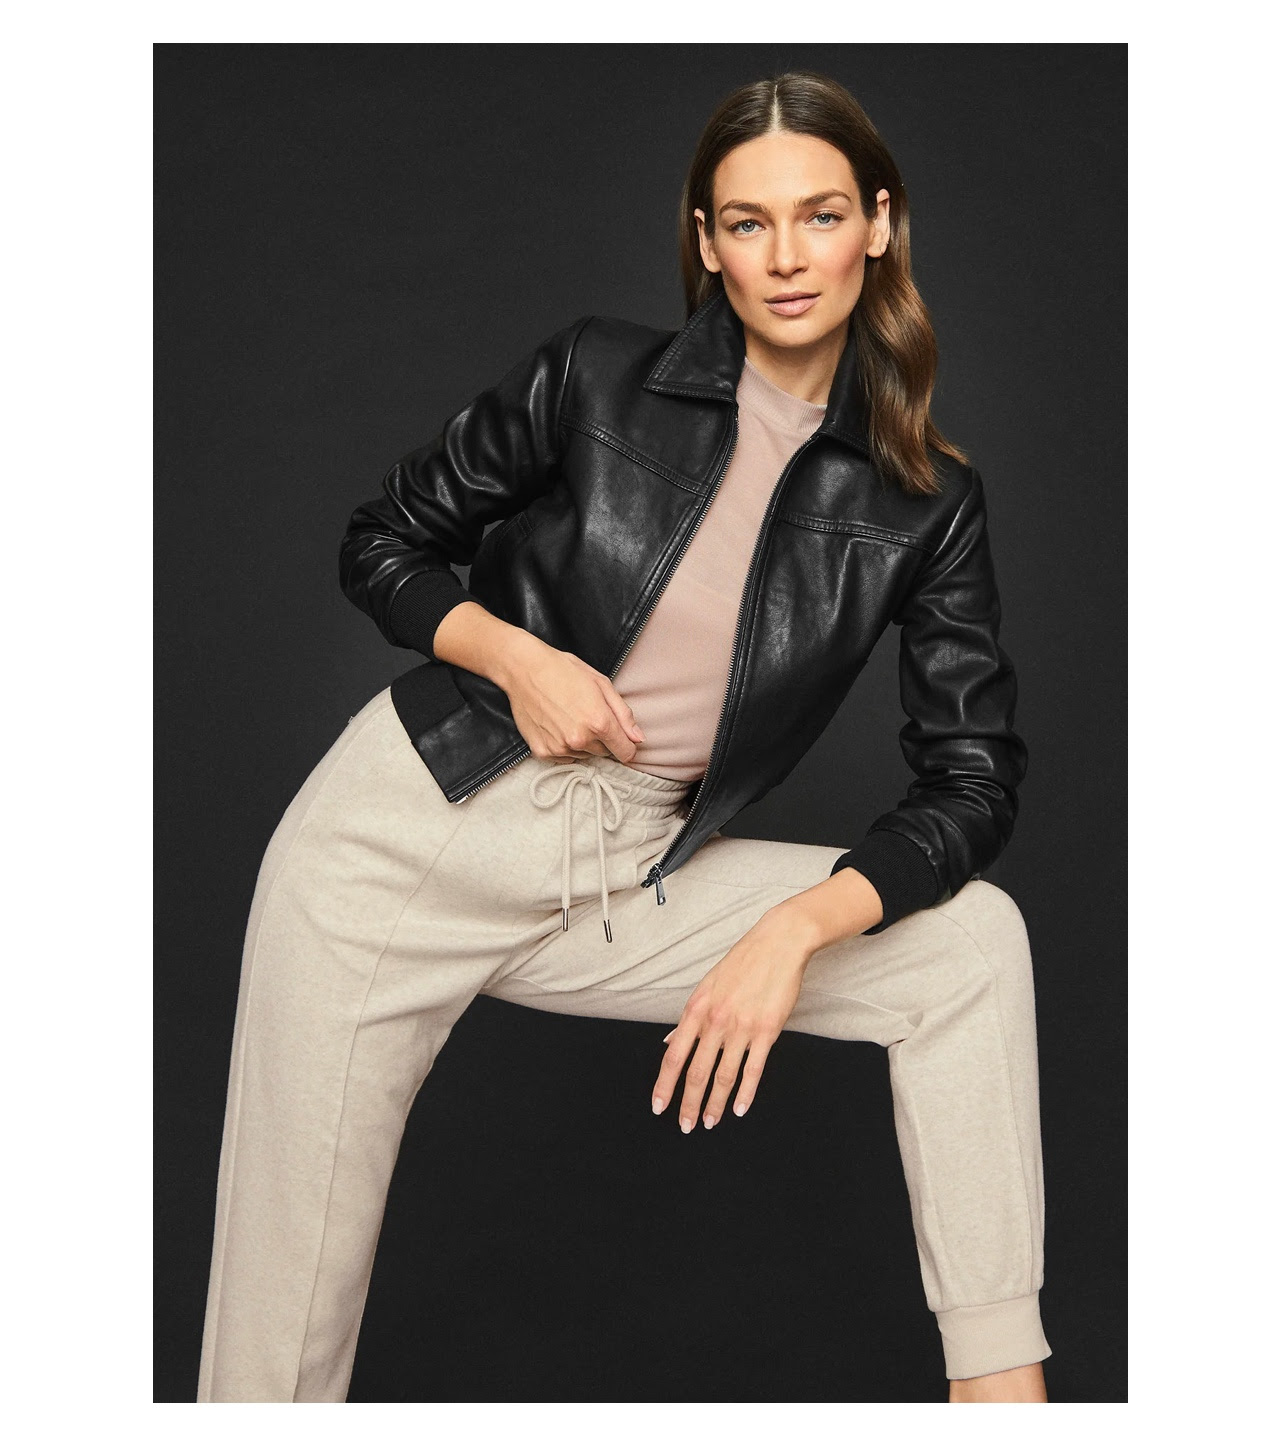 REISS - The Edit Contemporary Casual